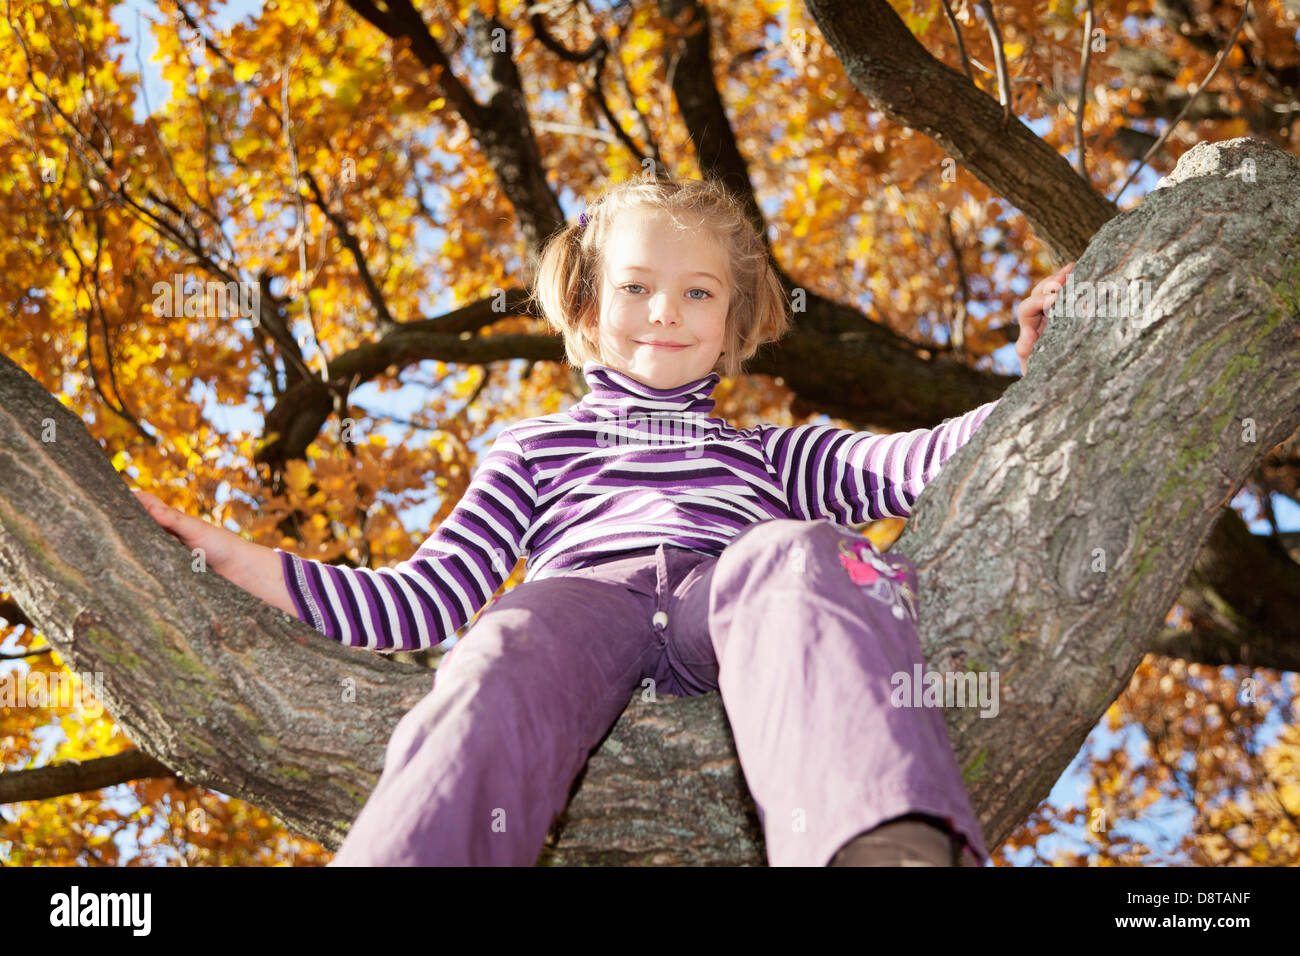 Six year-old girl sitting on a tree in autumn - Stock Image